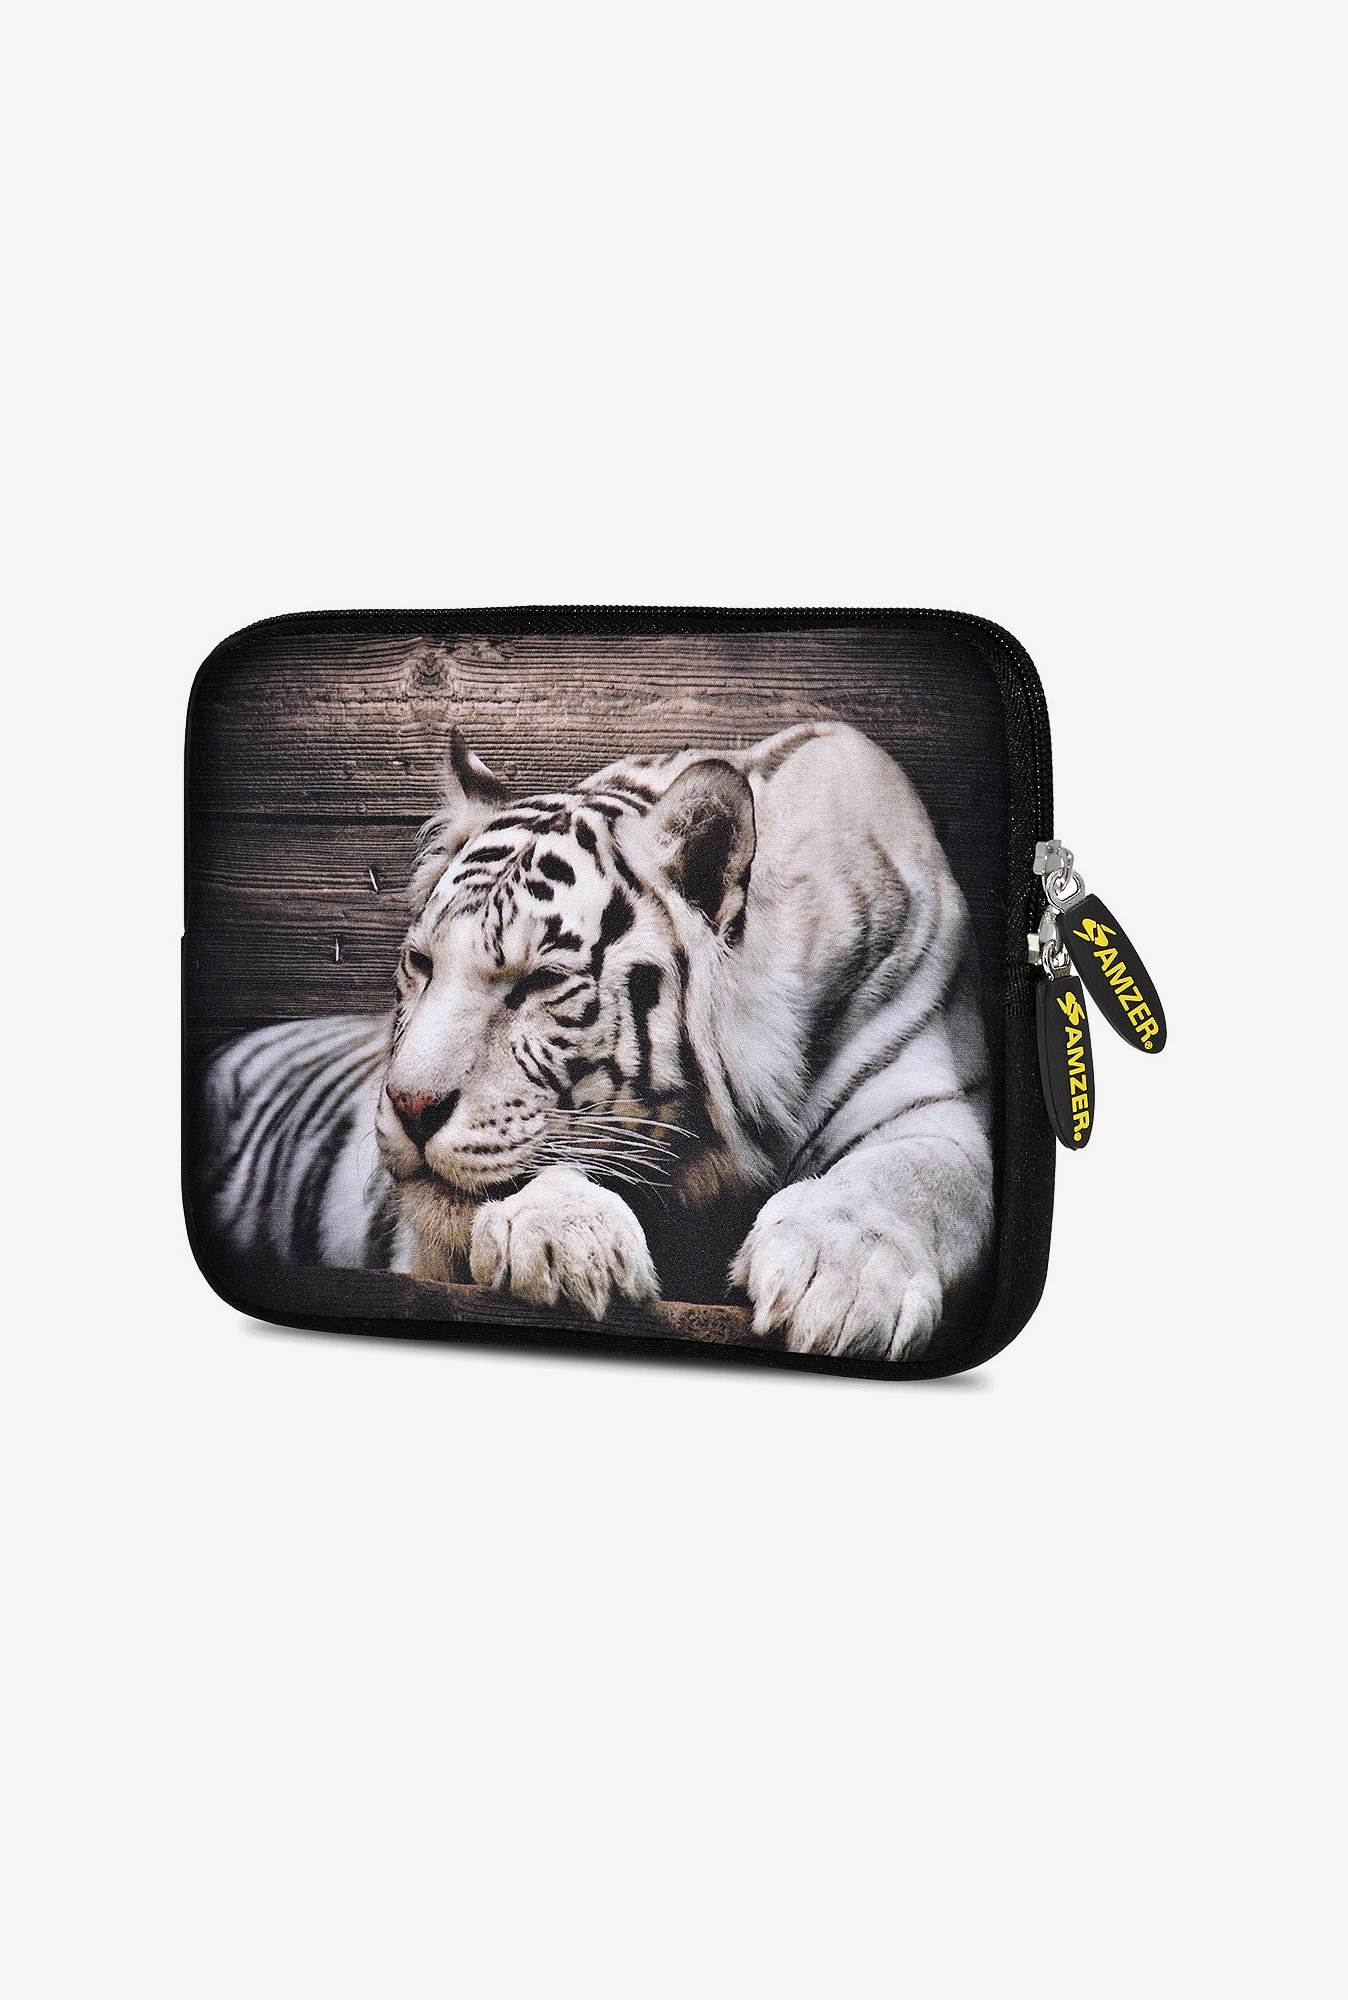 Amzer 7.75 Inch Neoprene Sleeve - Tiger Thoughts